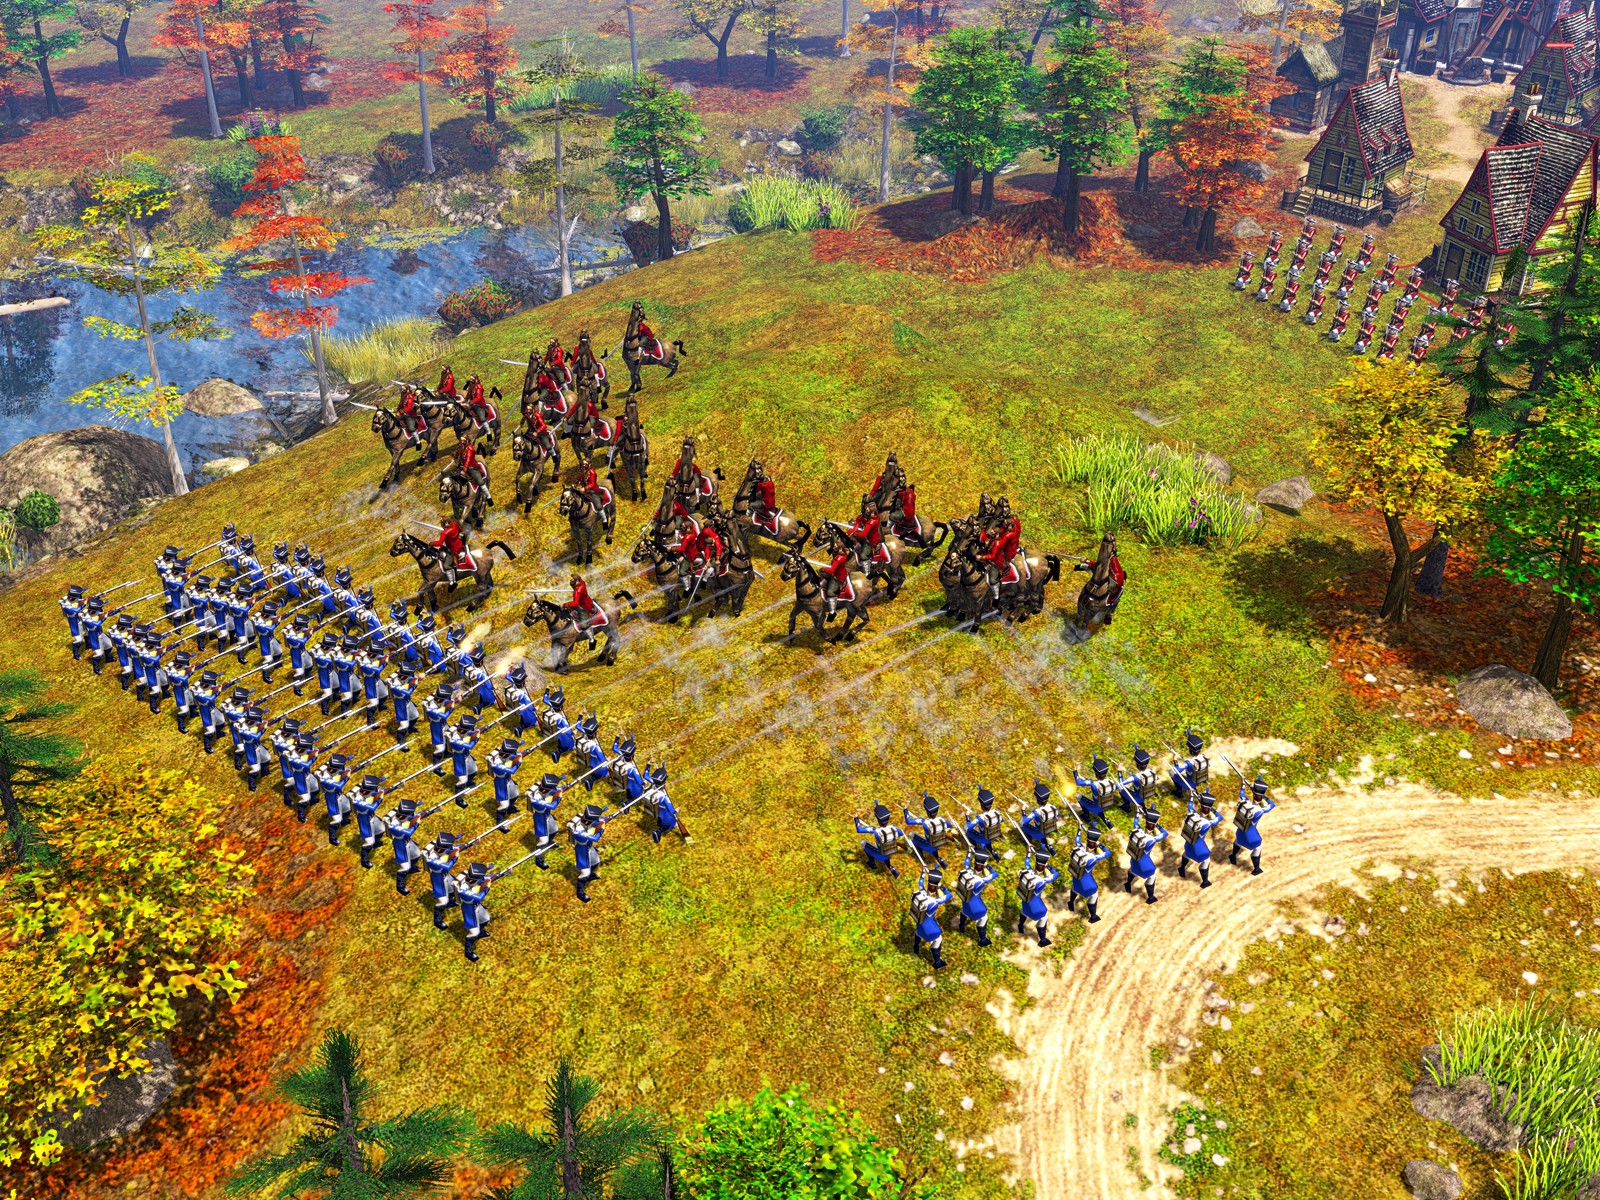 esocommunity age of empires iii tournaments replays - HD1600×1200